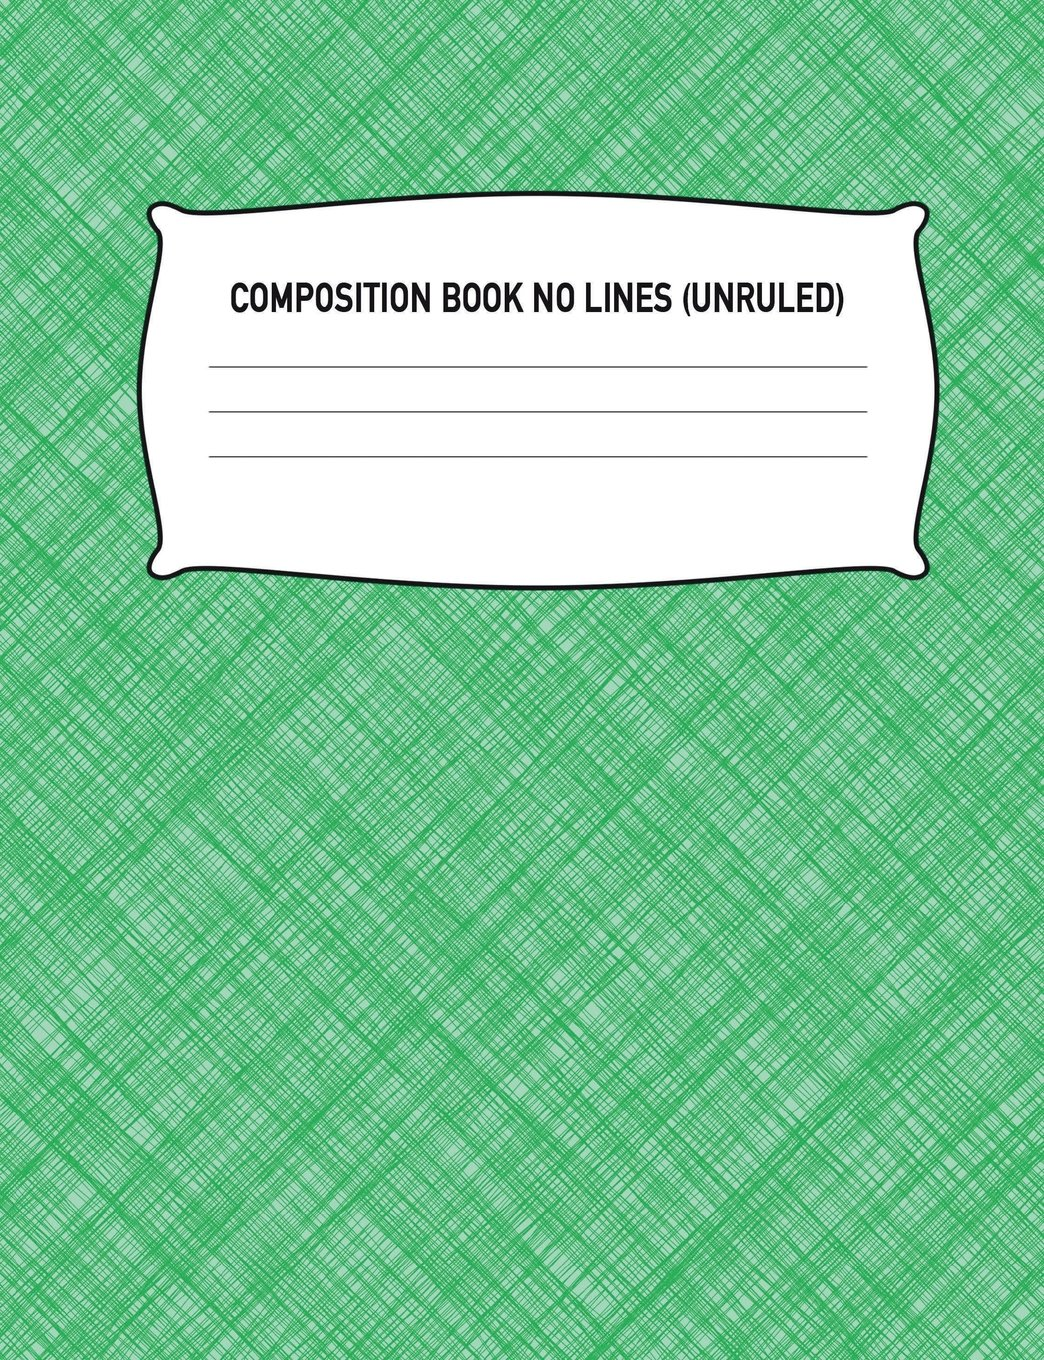 Download Composition Book No Lines (Unruled): Blank Sketch Pad Drawing Notebook: Light Green Sketchbook Notepad Diary Journal: High School, Middle School, ... 7.44 x 9.69 Paper 100 Pages, Birthday, Gift pdf epub